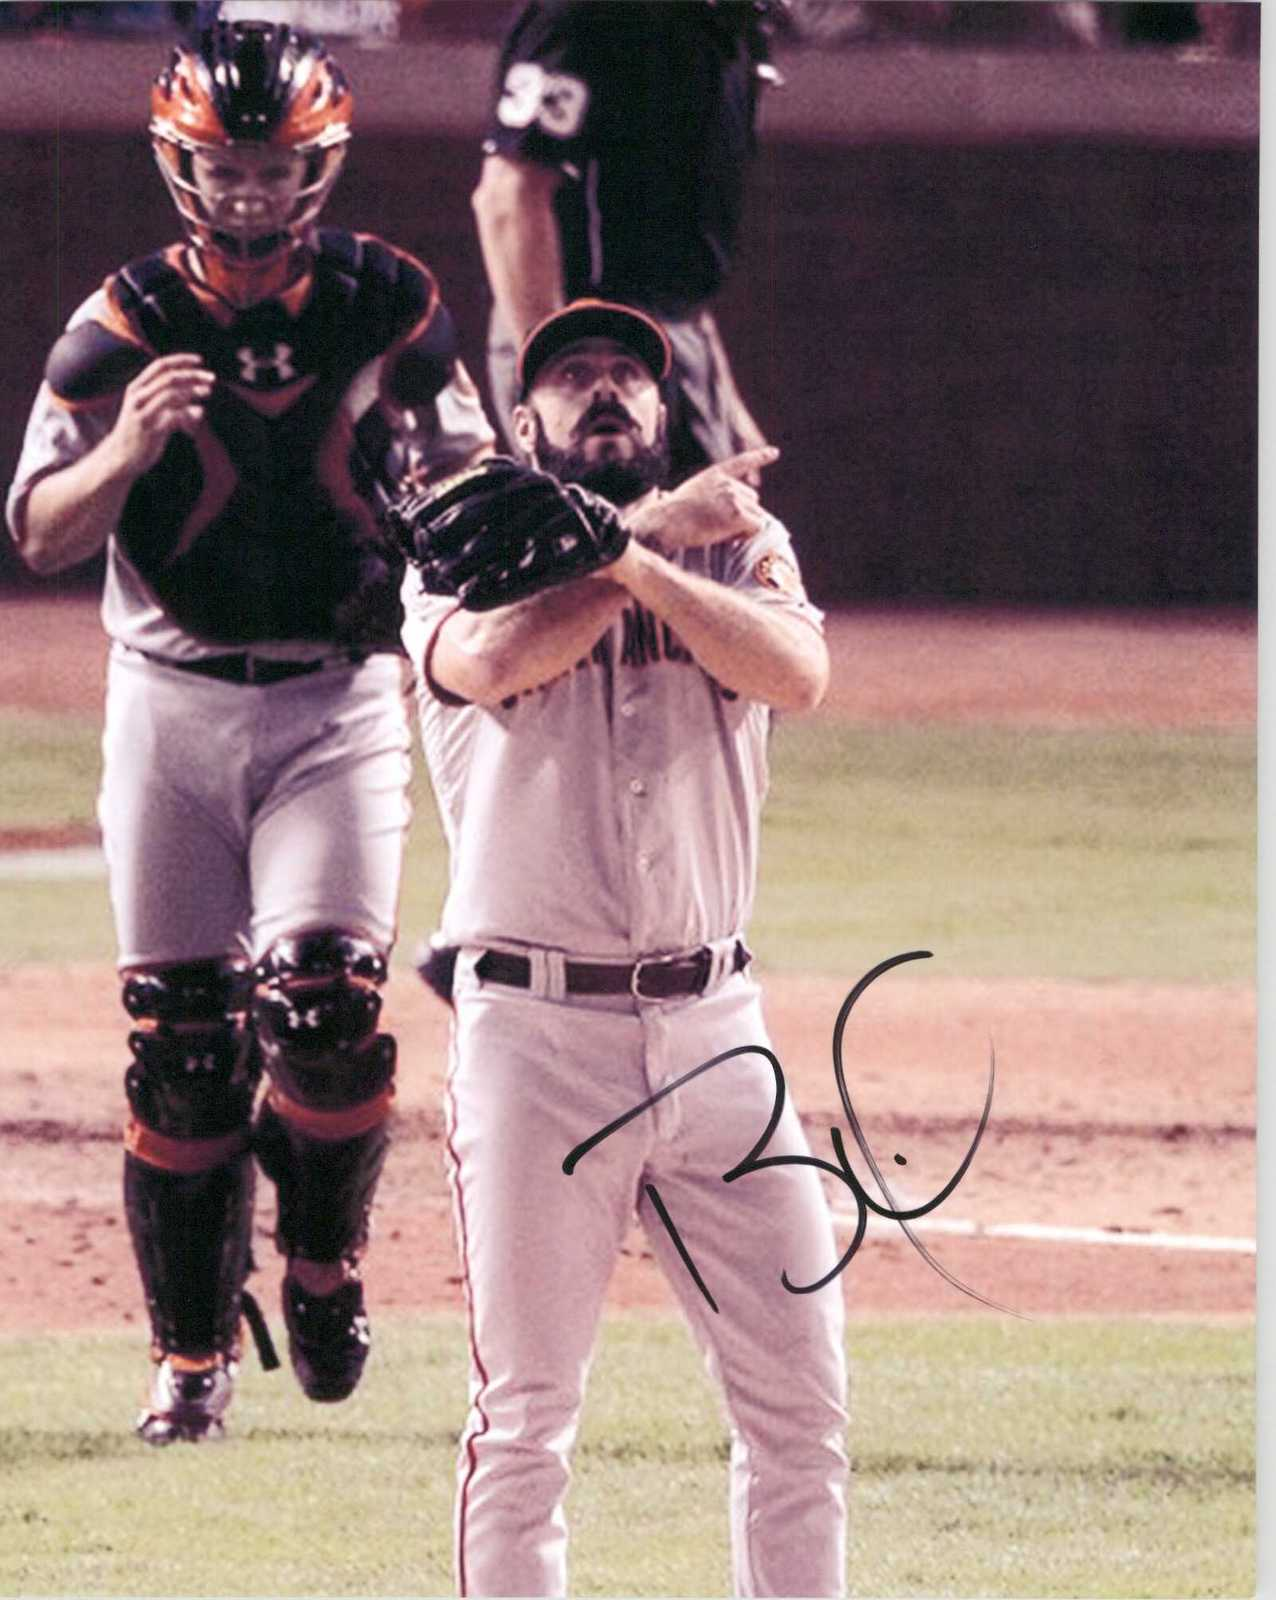 Primary image for Brian Wilson Signed Autographed Glossy 8x10 Photo - San Francisco Giants